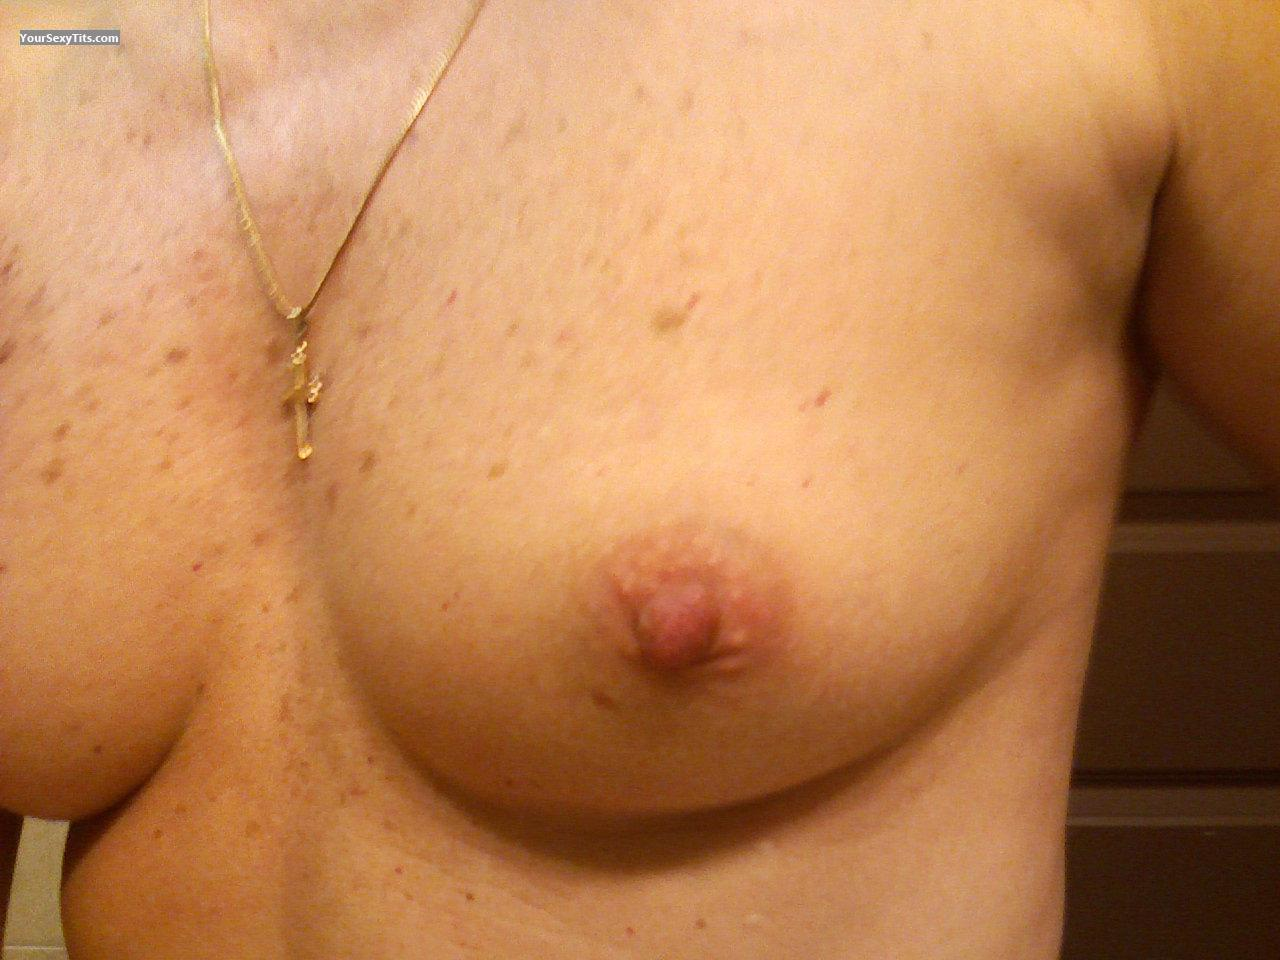 Tit Flash: Small Tits - Tinytits from United States